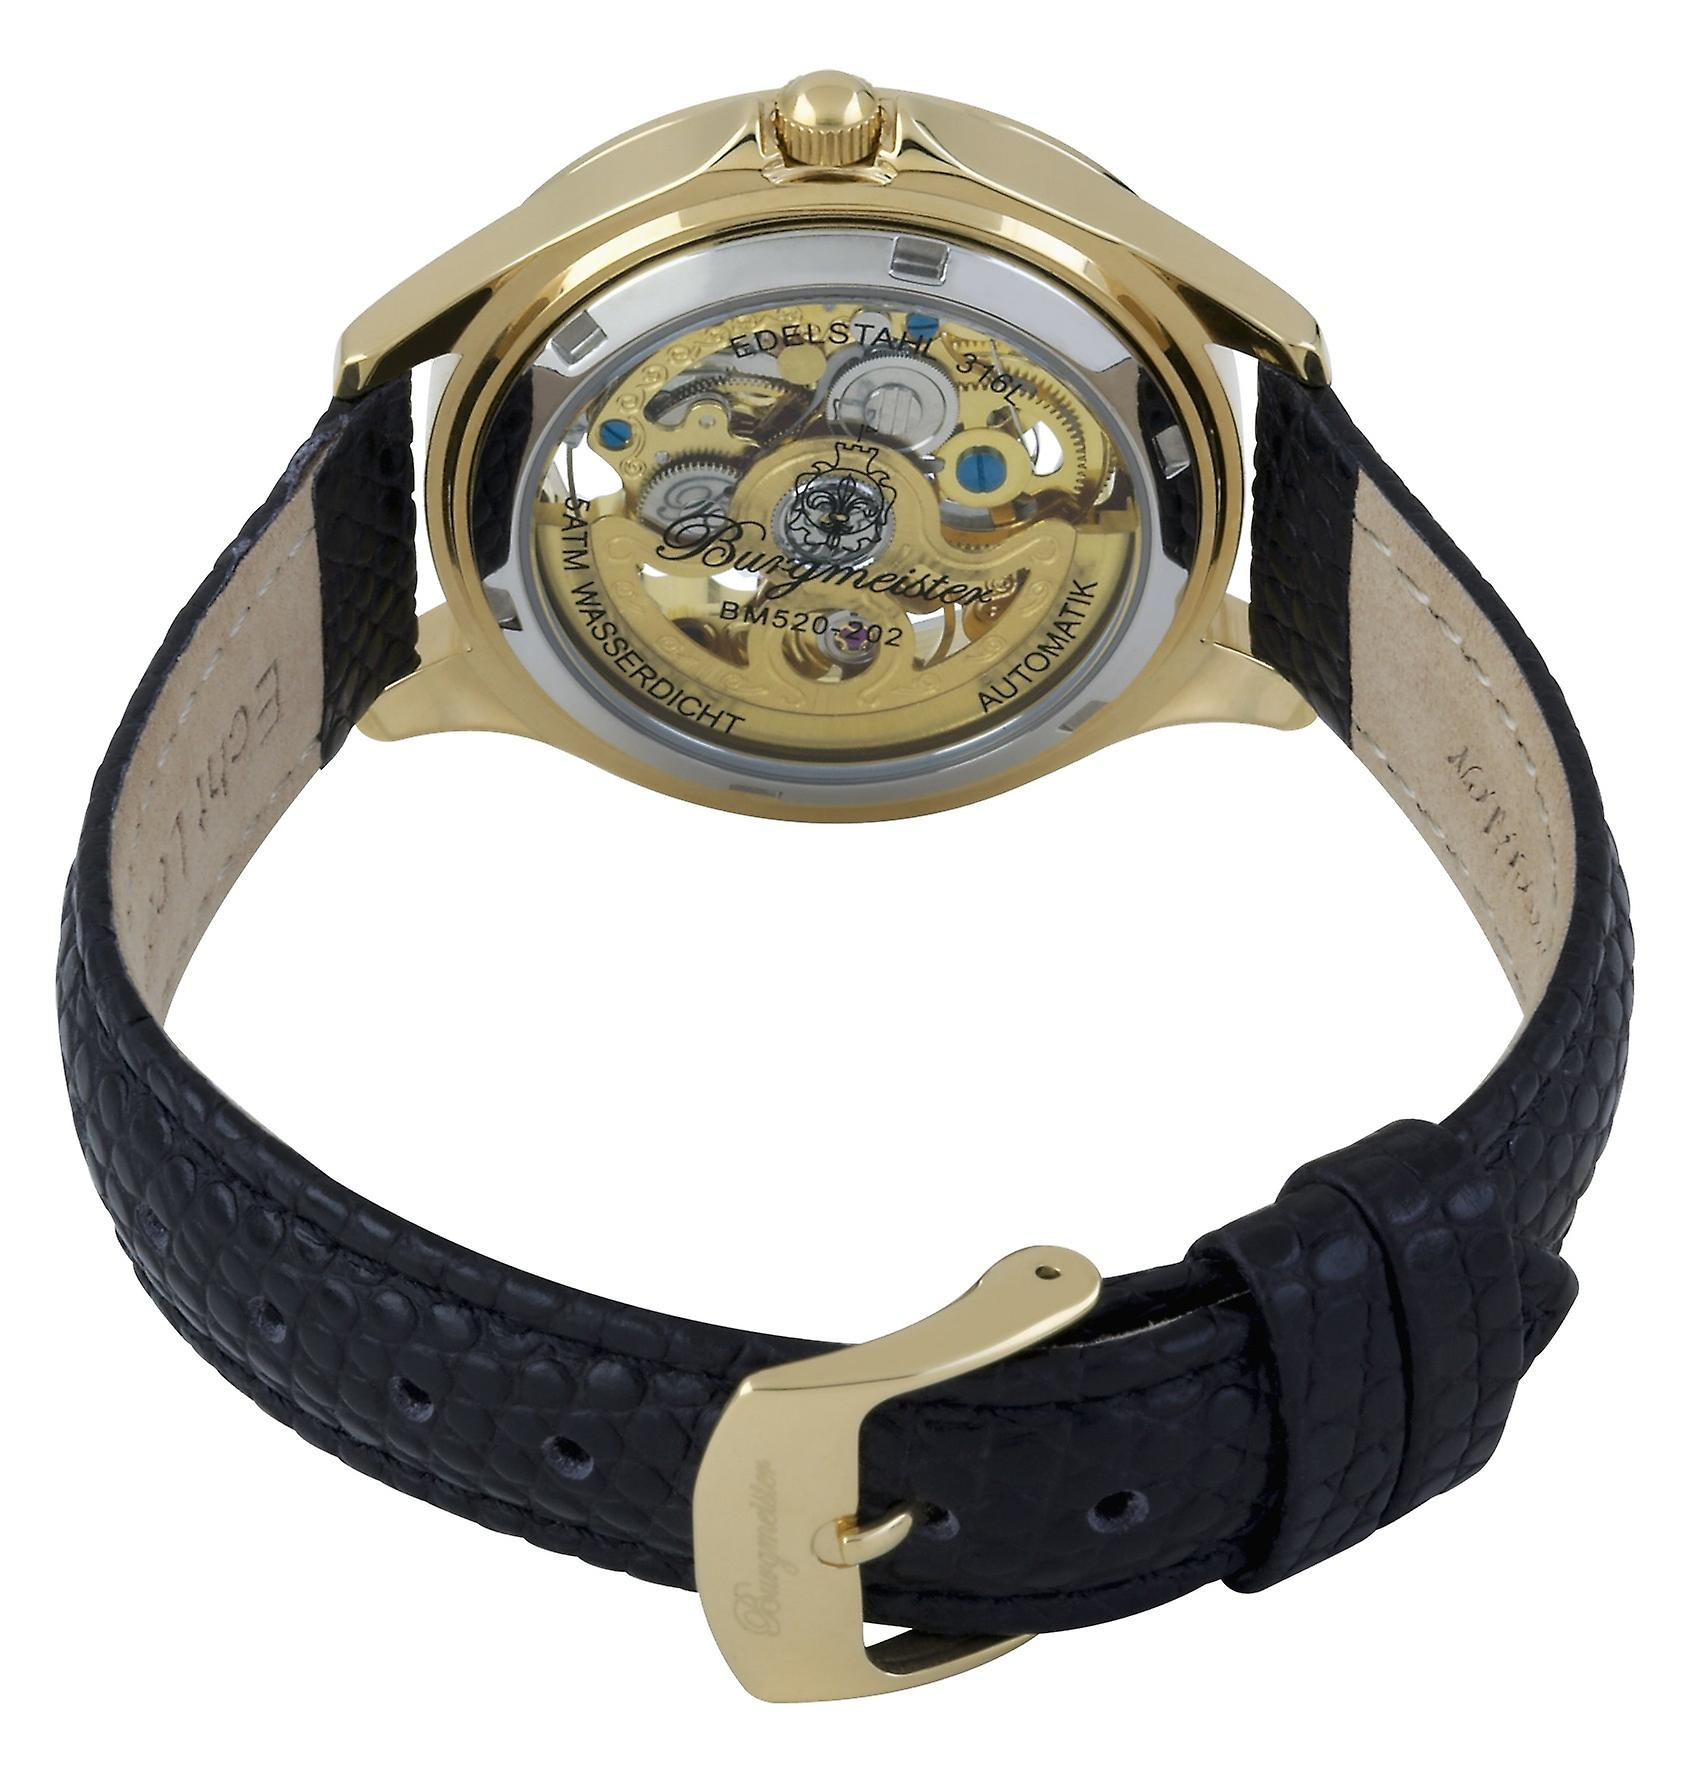 Burgmeister Ladies Automatic Watch Merida BM520-202